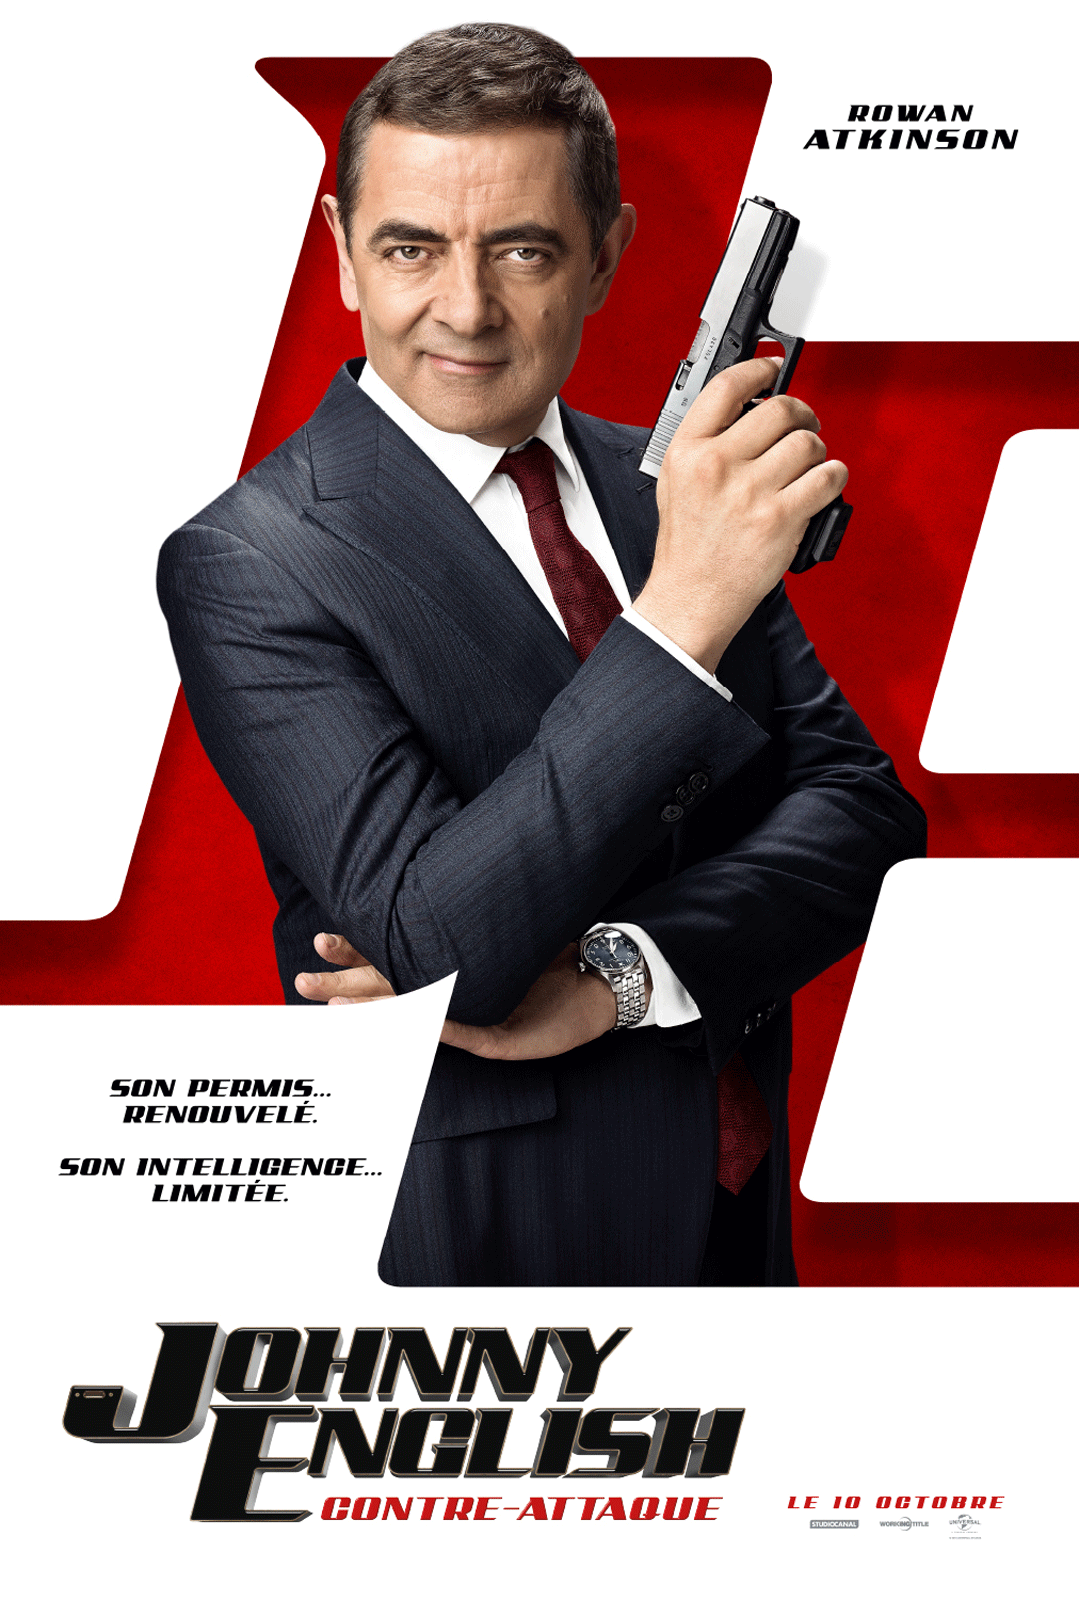 Johnny English contre-attaque 2018